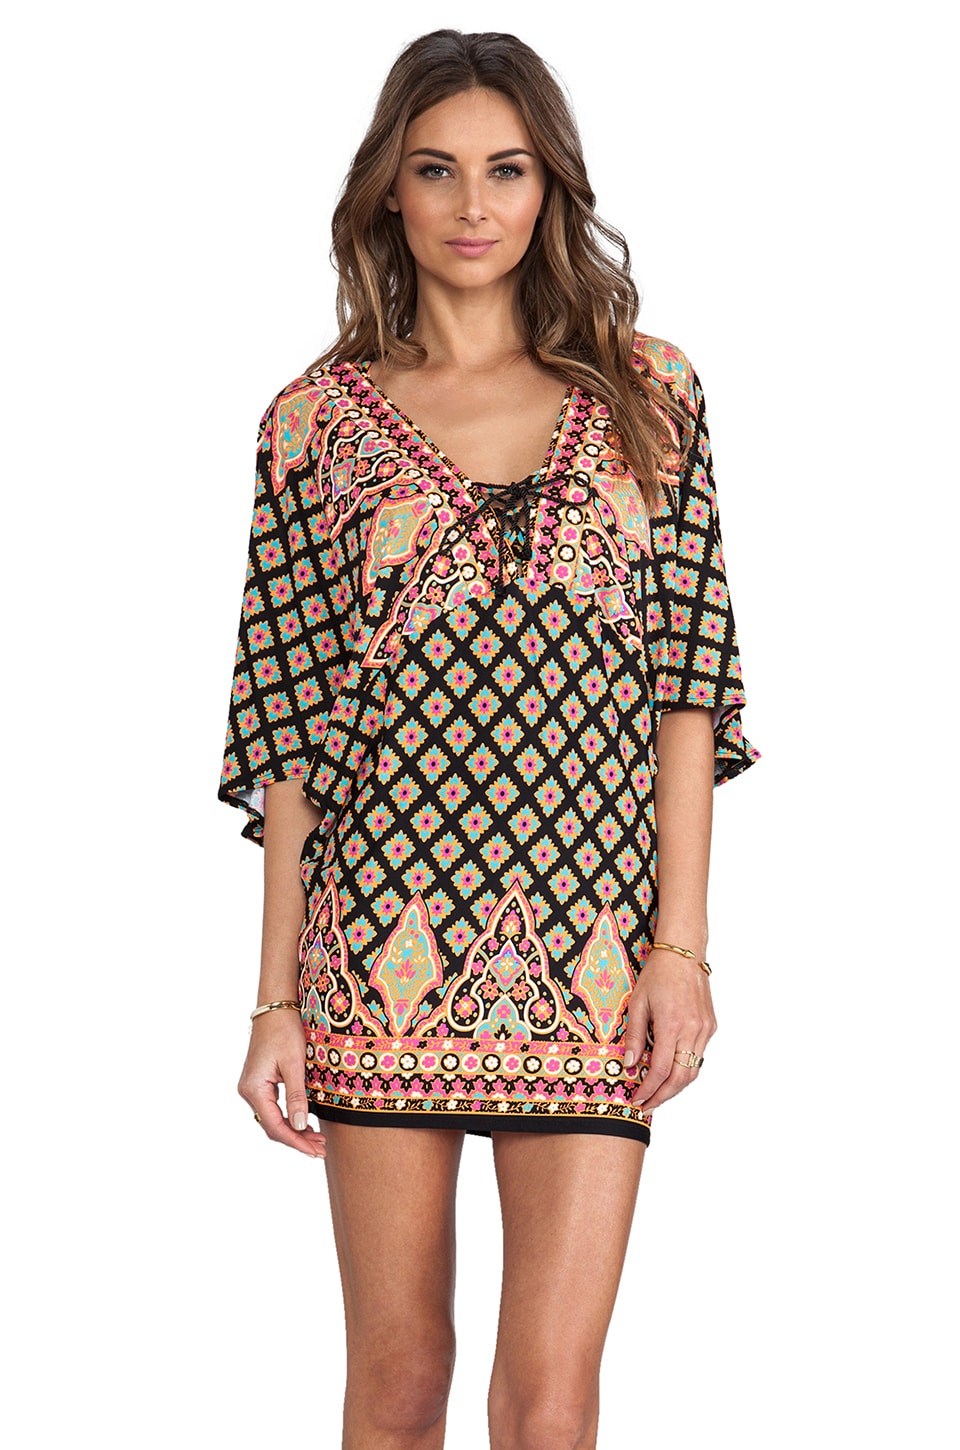 Nanette Lepore Moroccan Medallion Tunic in Black